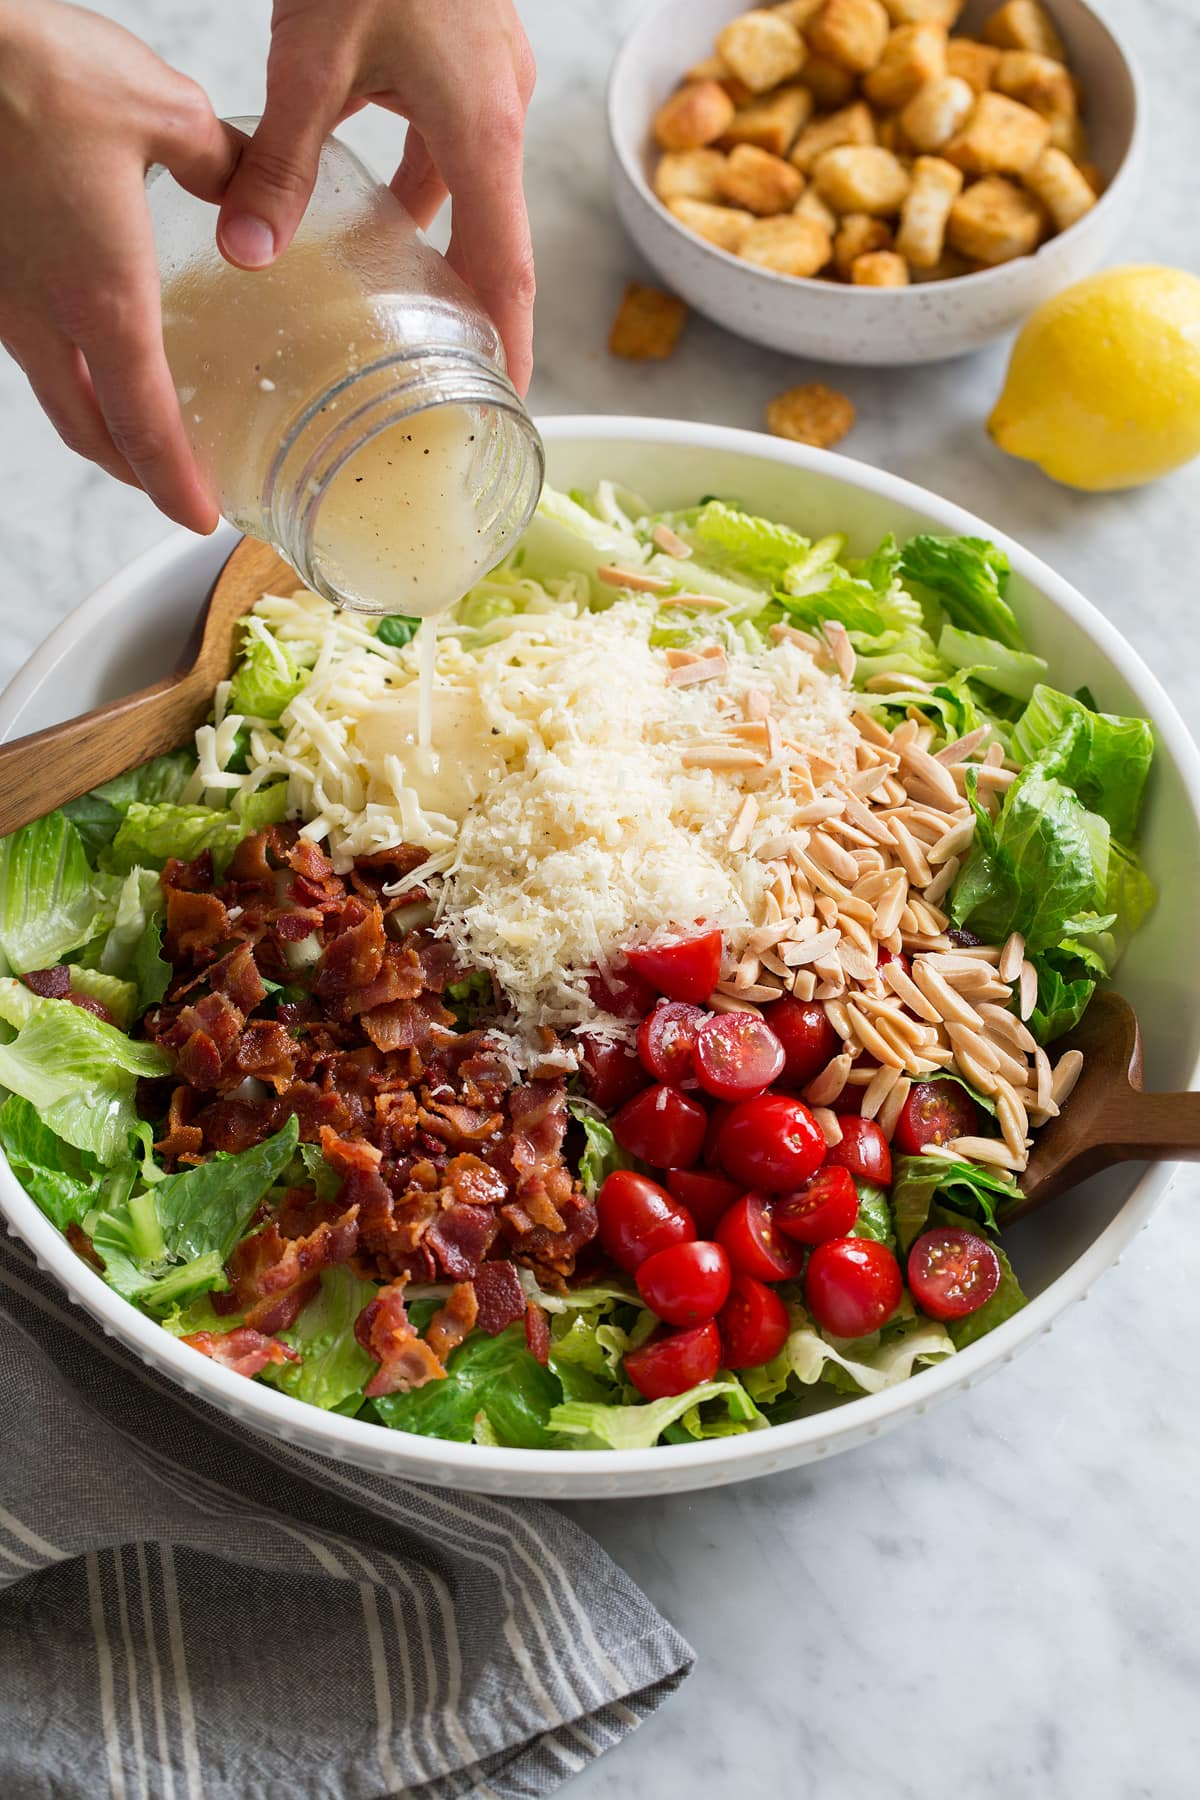 Pouring lemon dressing over salad in a large white bowl.